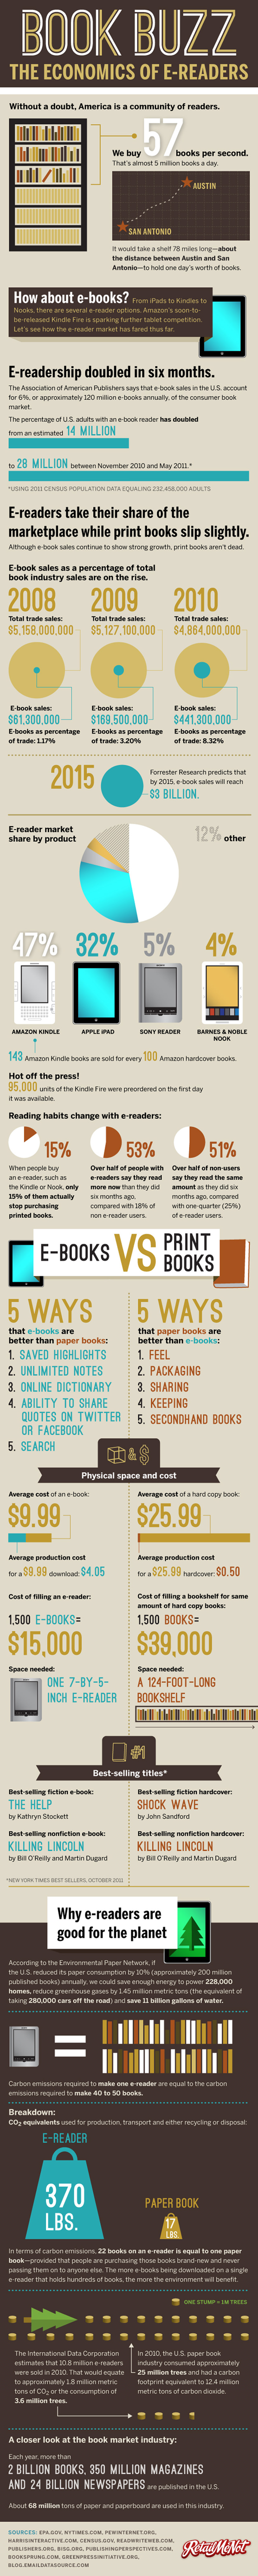 ebook vs book infographic comparison